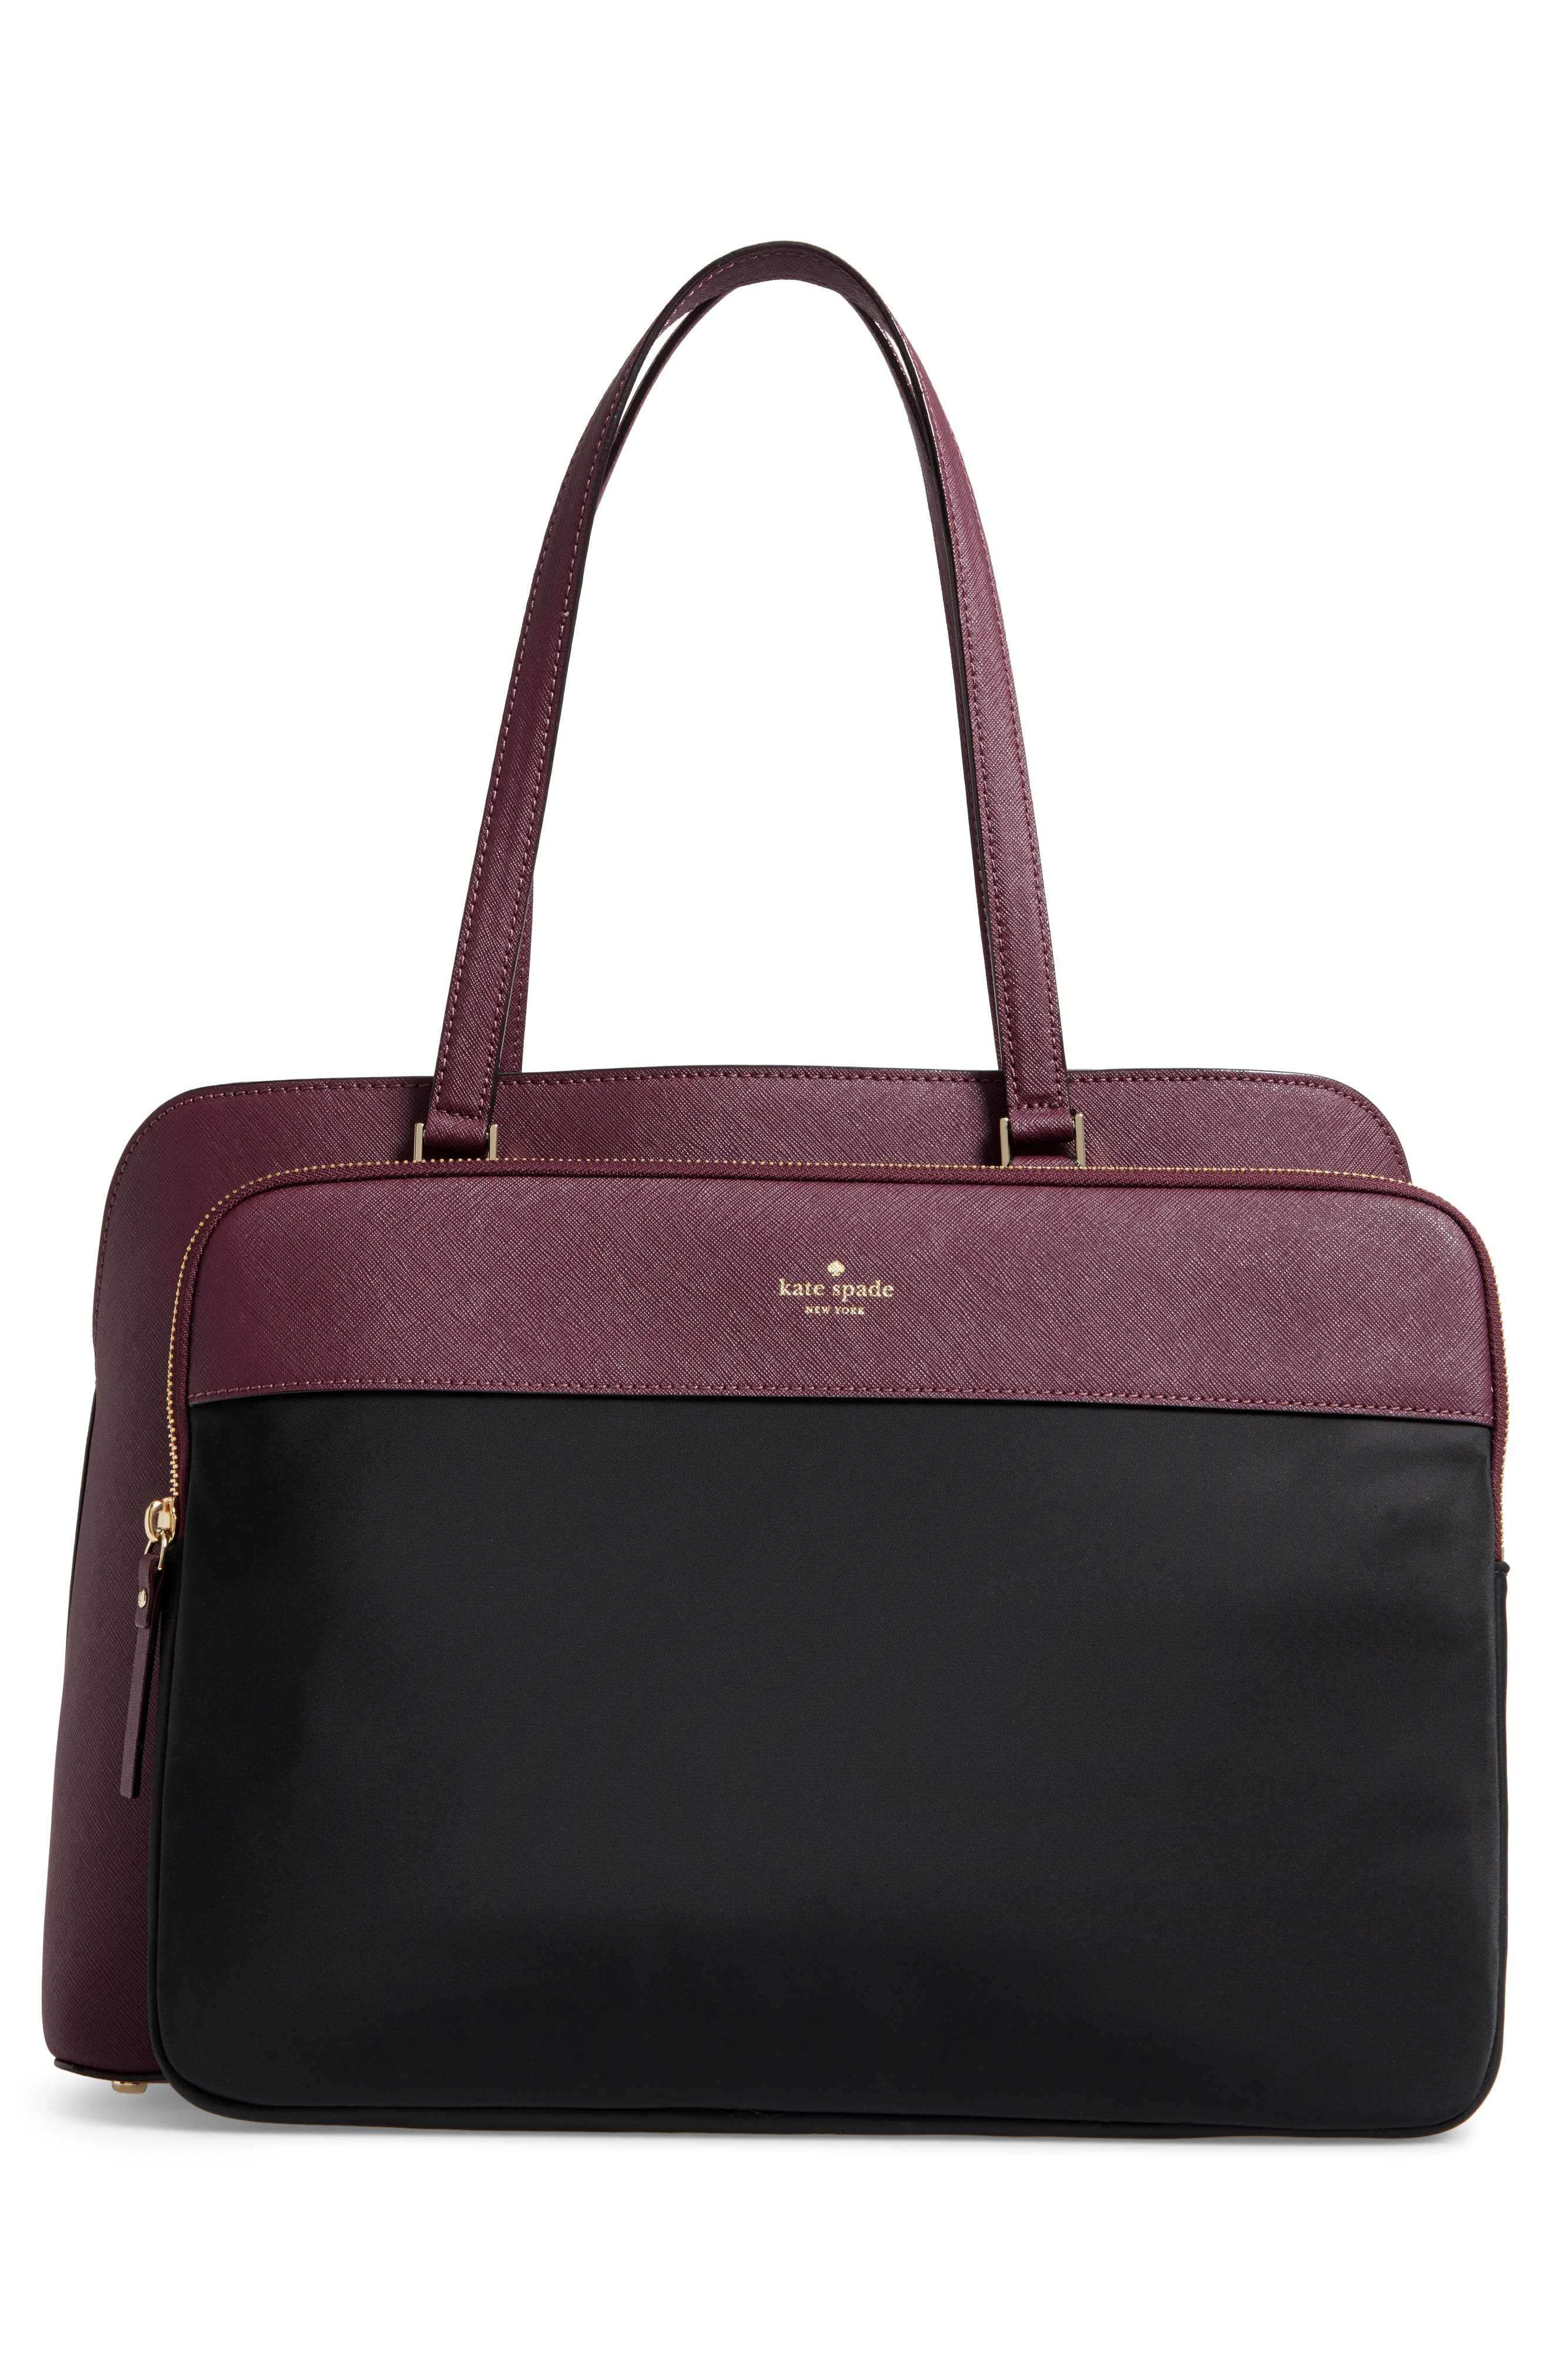 cameron street - marybeth leather tote,                             Alternate thumbnail 3, color,                             513